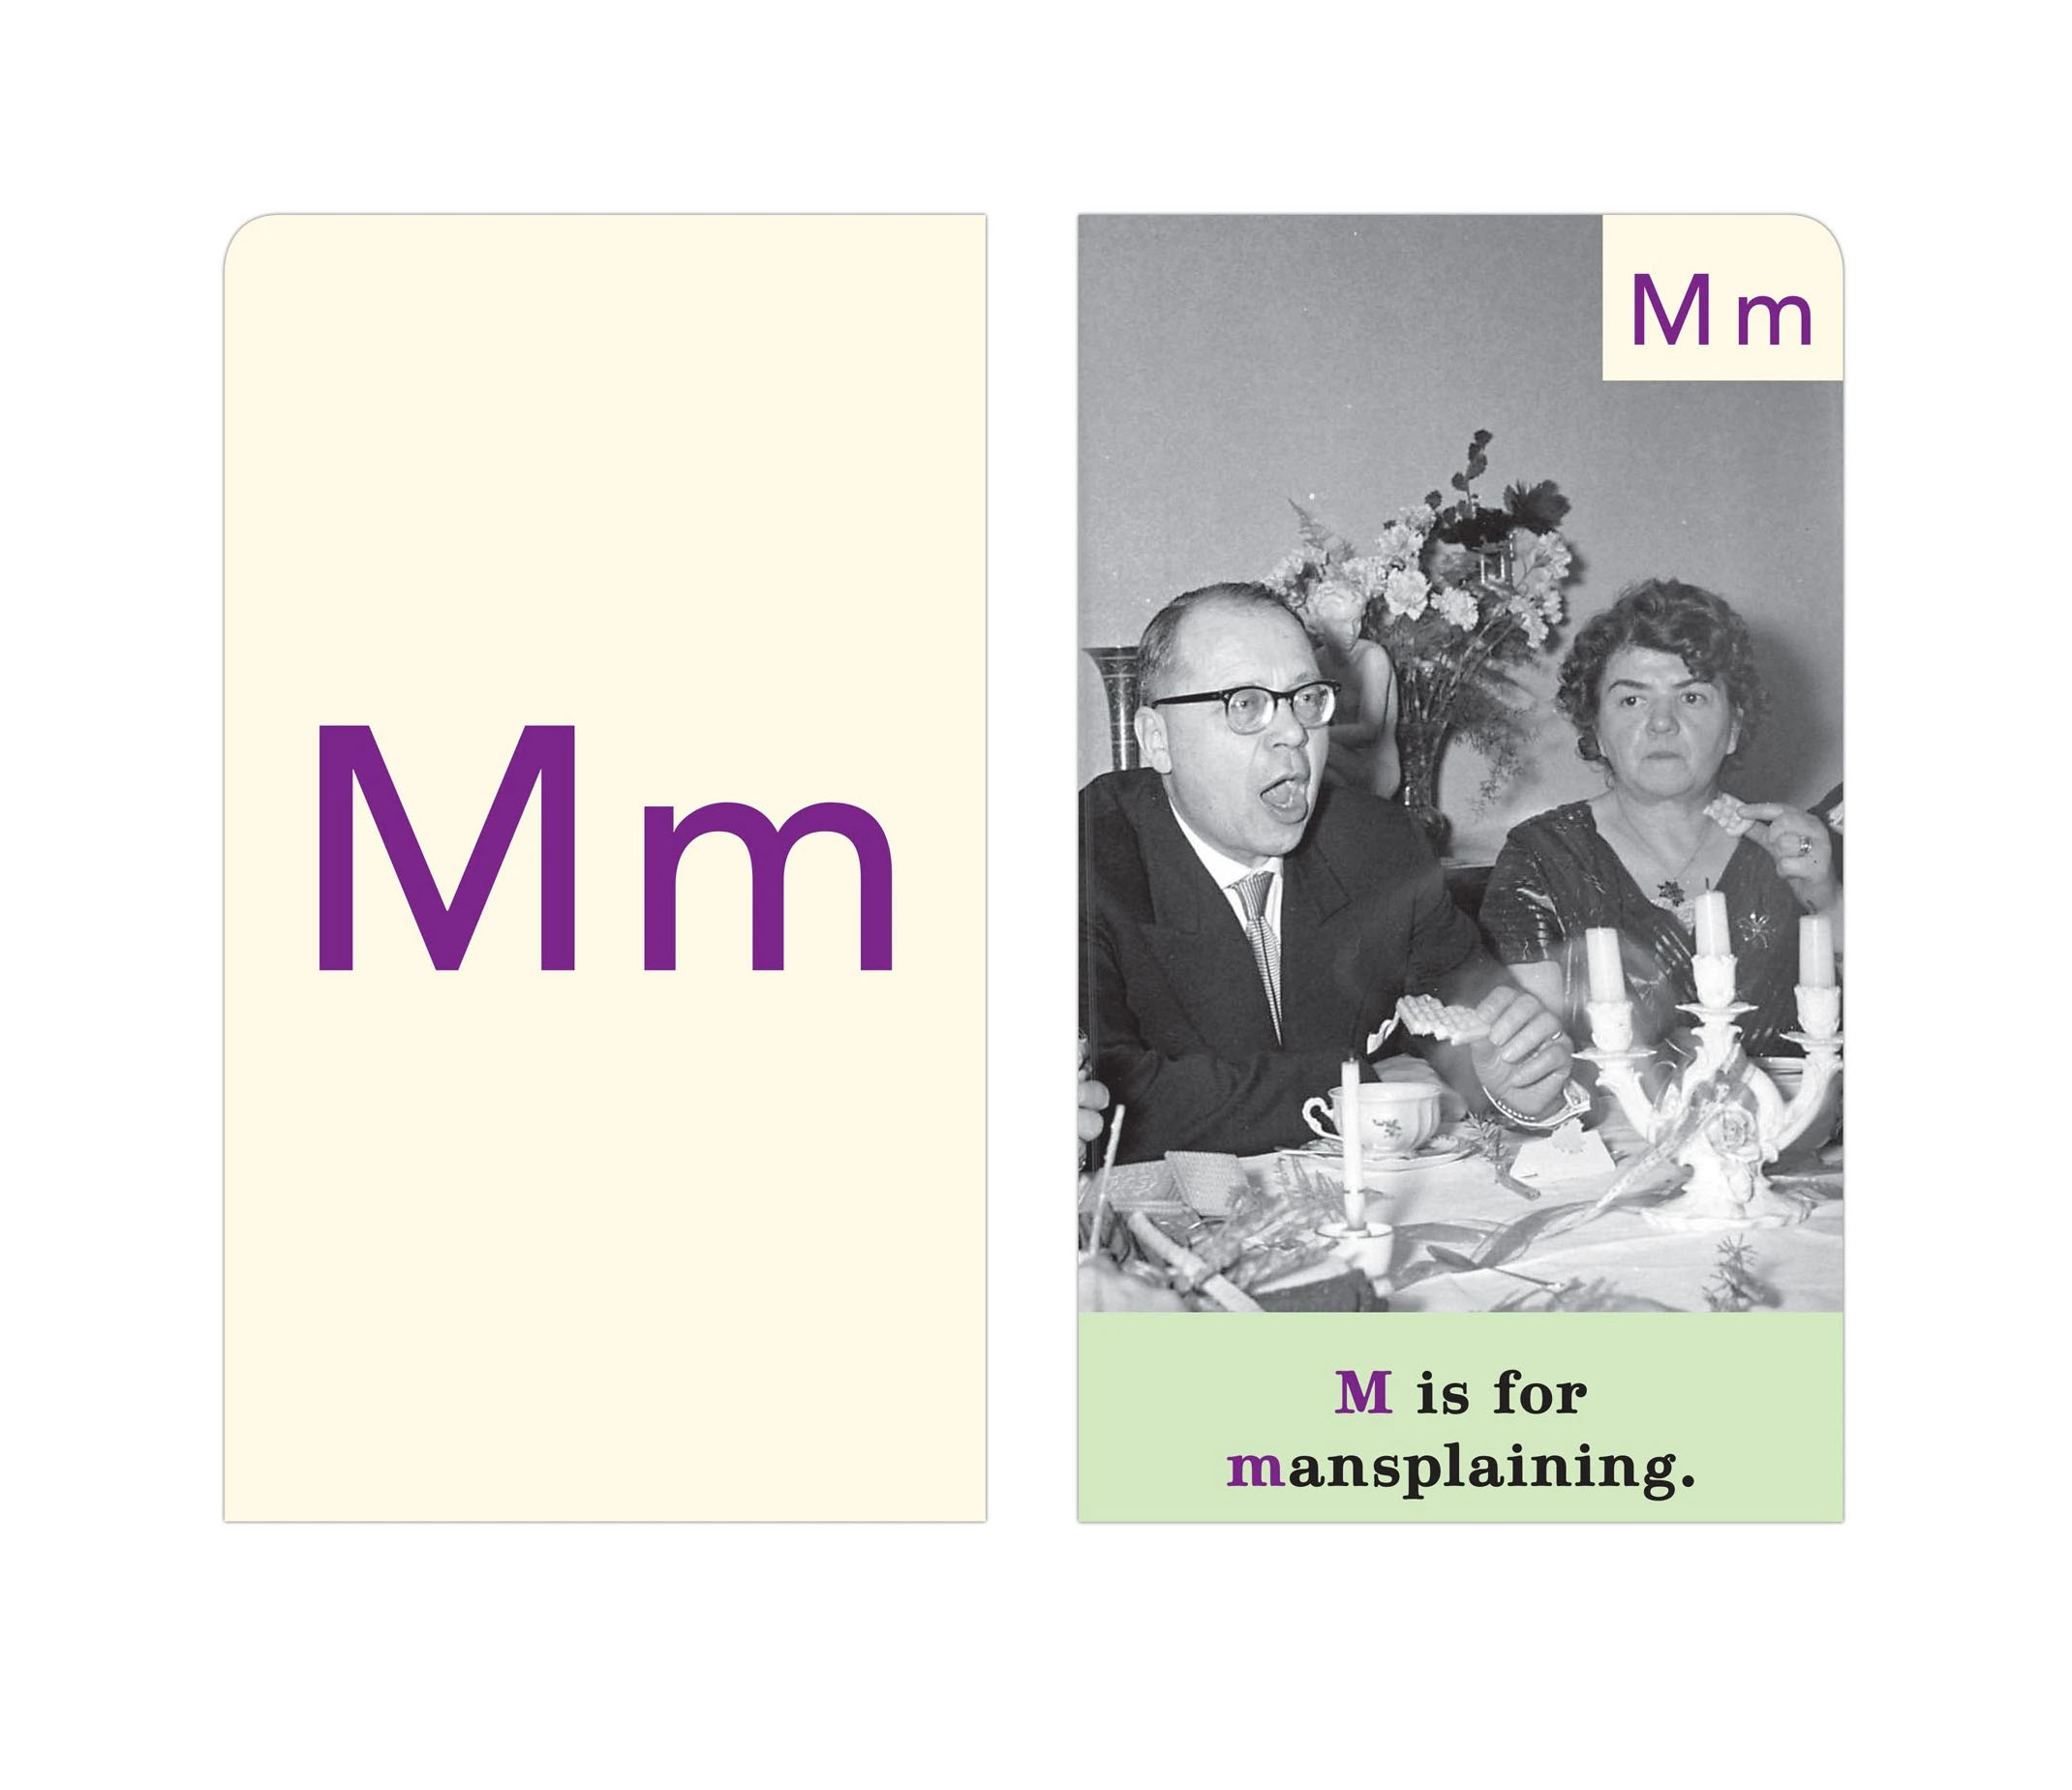 The letter card M stands for mansplaining. The front of the card is a cream color paper with the letter M on it in purple. The back of the card features an image of a woman looking displeased next to a man with glasses with his mouth open at the dinner table.